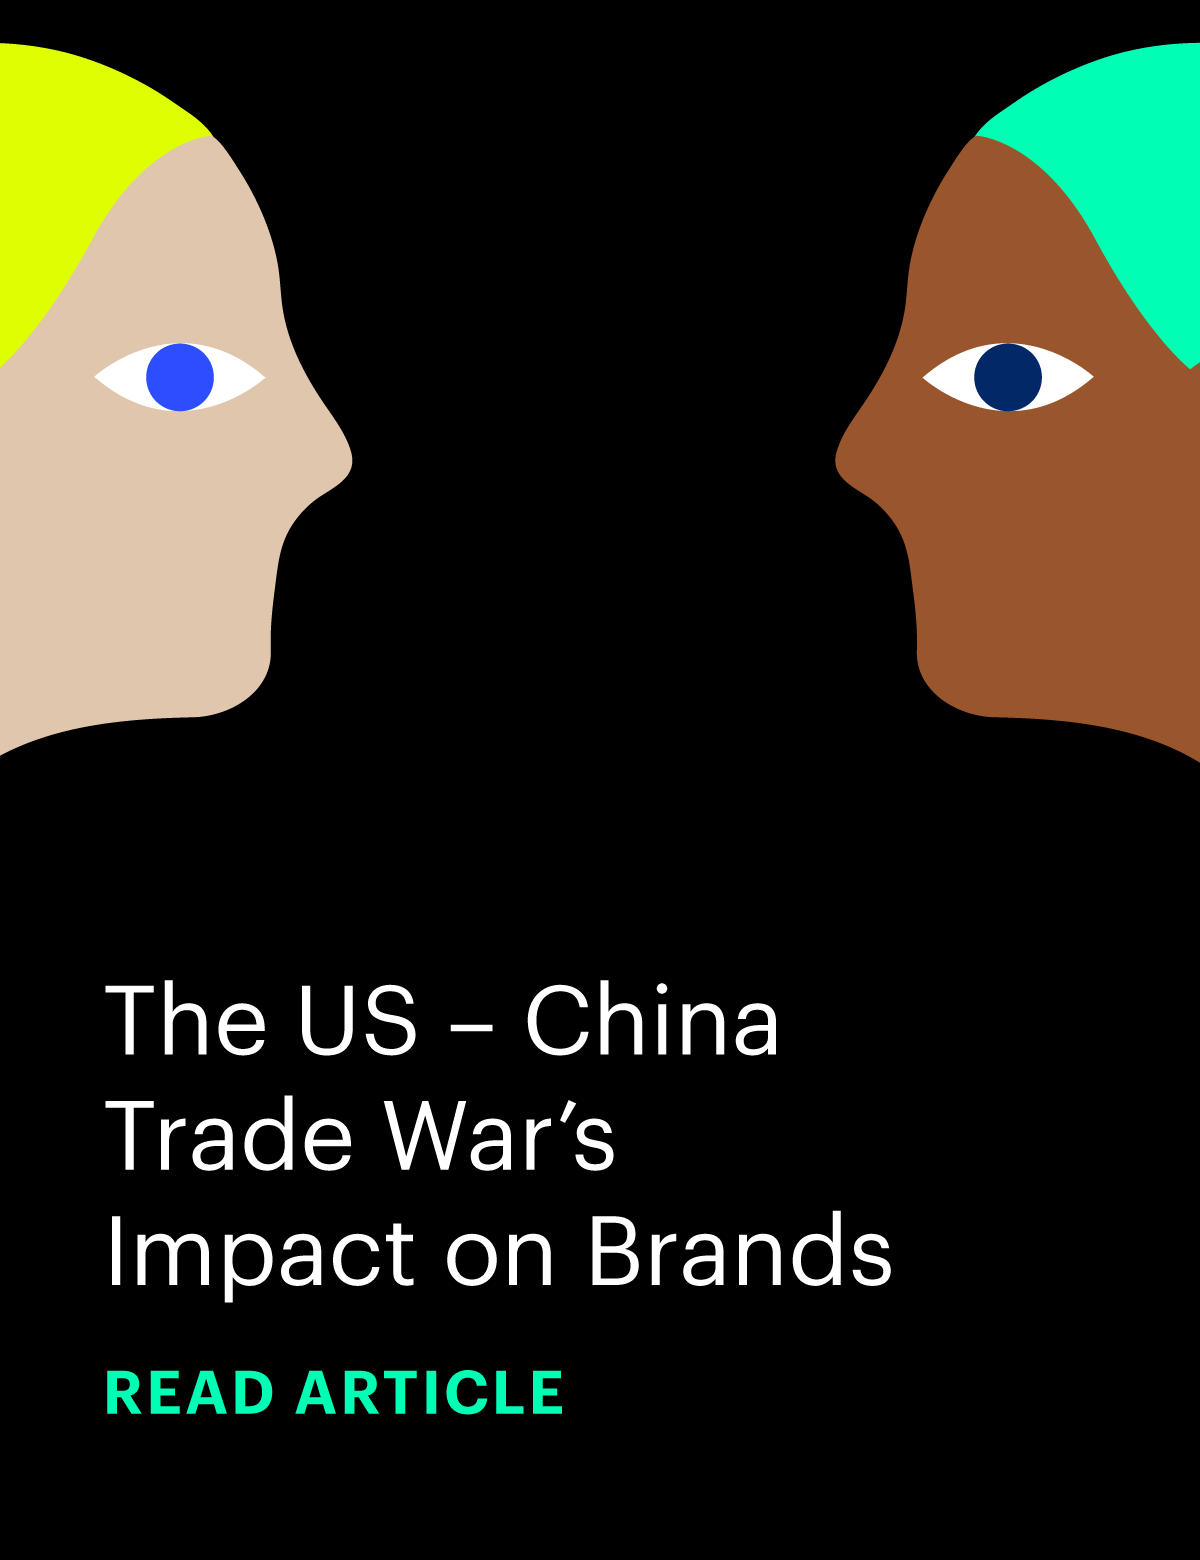 The US-China Trade War Impact on Brands